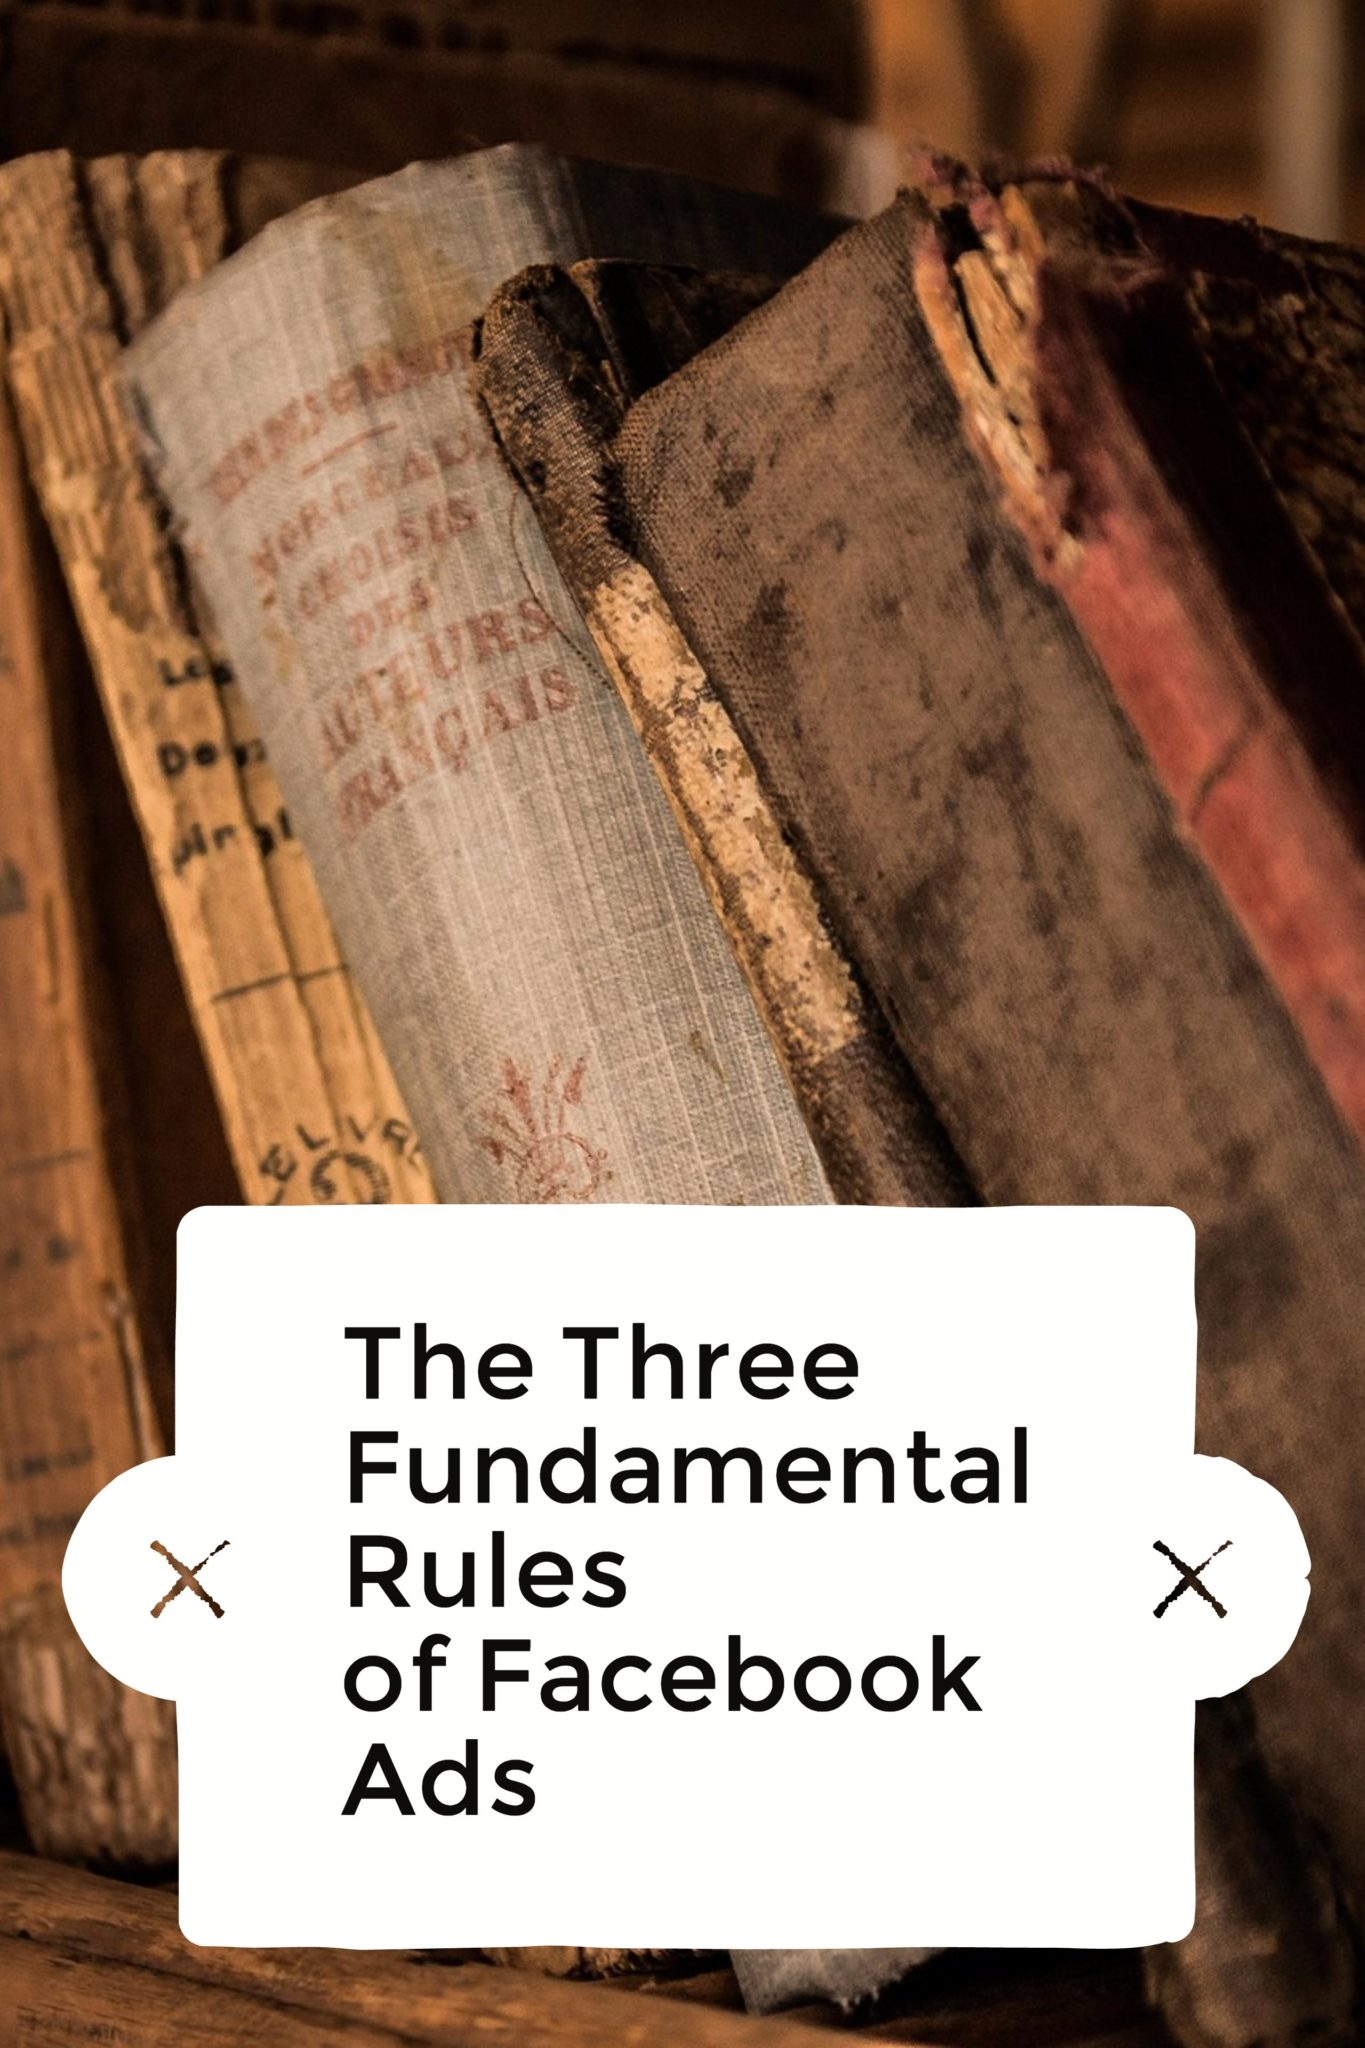 Facebook Ads are a great way to drive traffic and exposure to your brand. However, they won't work unless you know the three fundamental rules. Click here to learn more in my latest Facebook Ads tutorial!